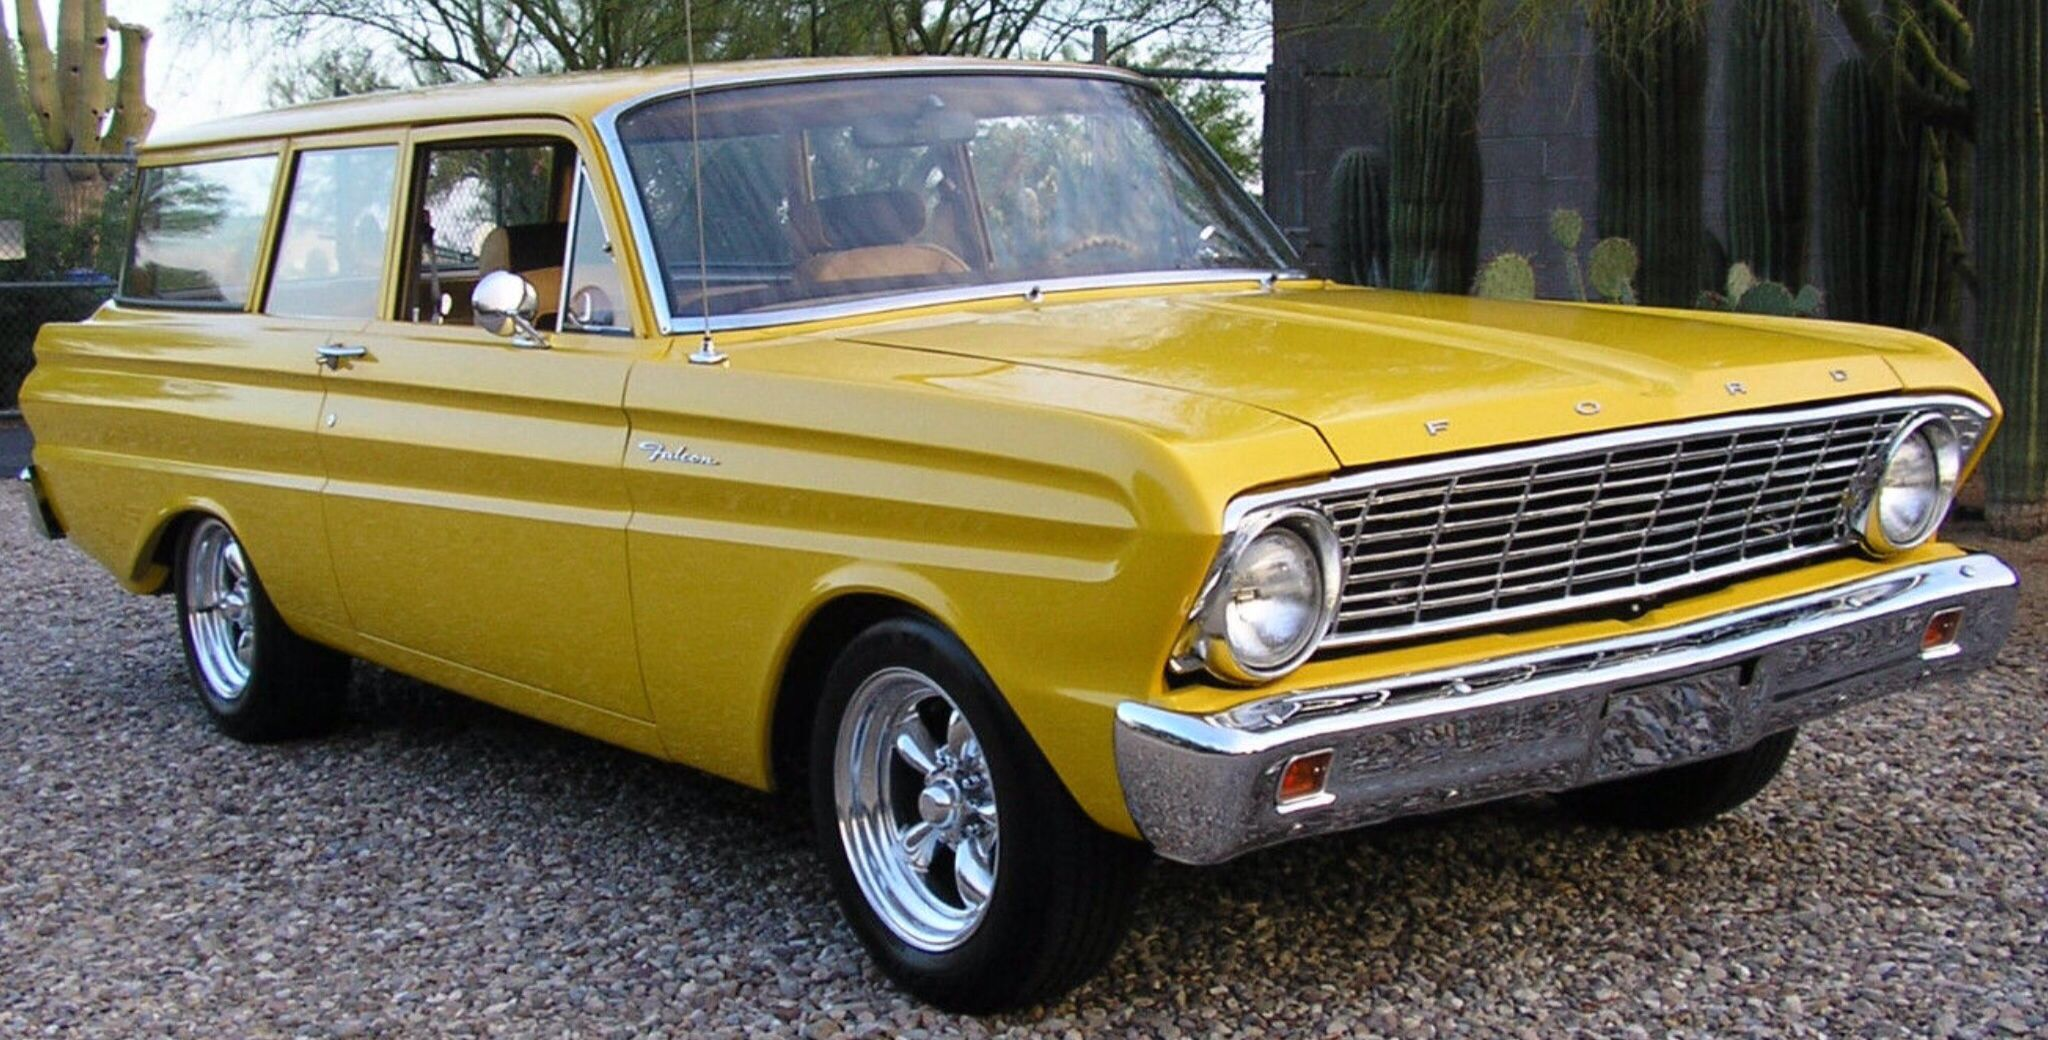 1964 Ford Falcon 2 Door Wagon With Images Ford Falcon